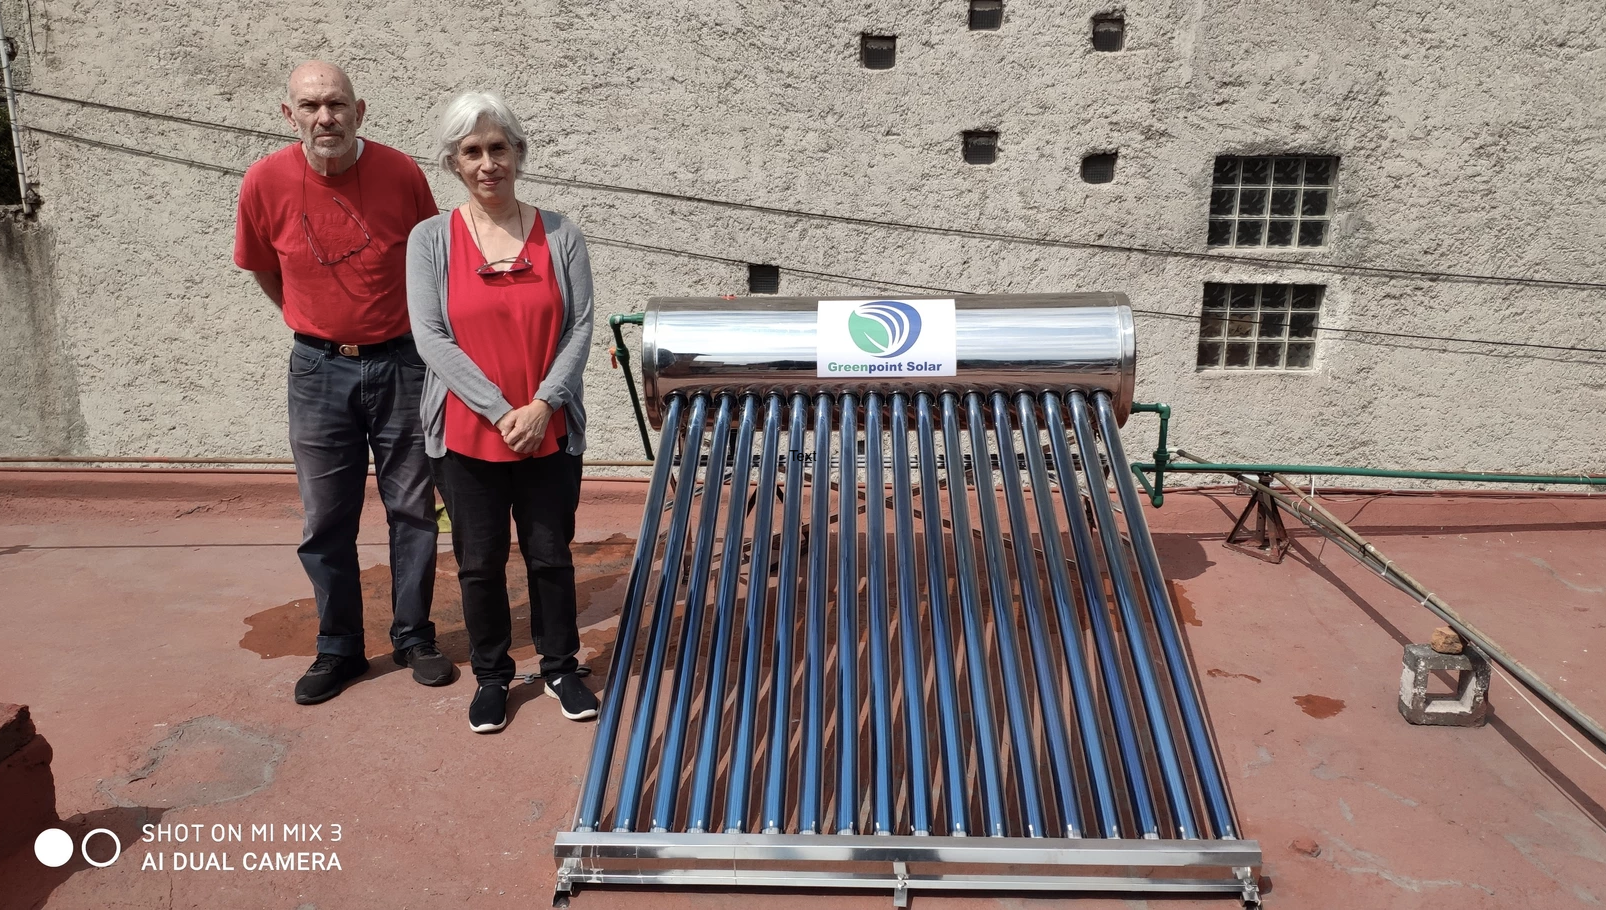 Graviti's customers stand next to their newly purchased solar water heater